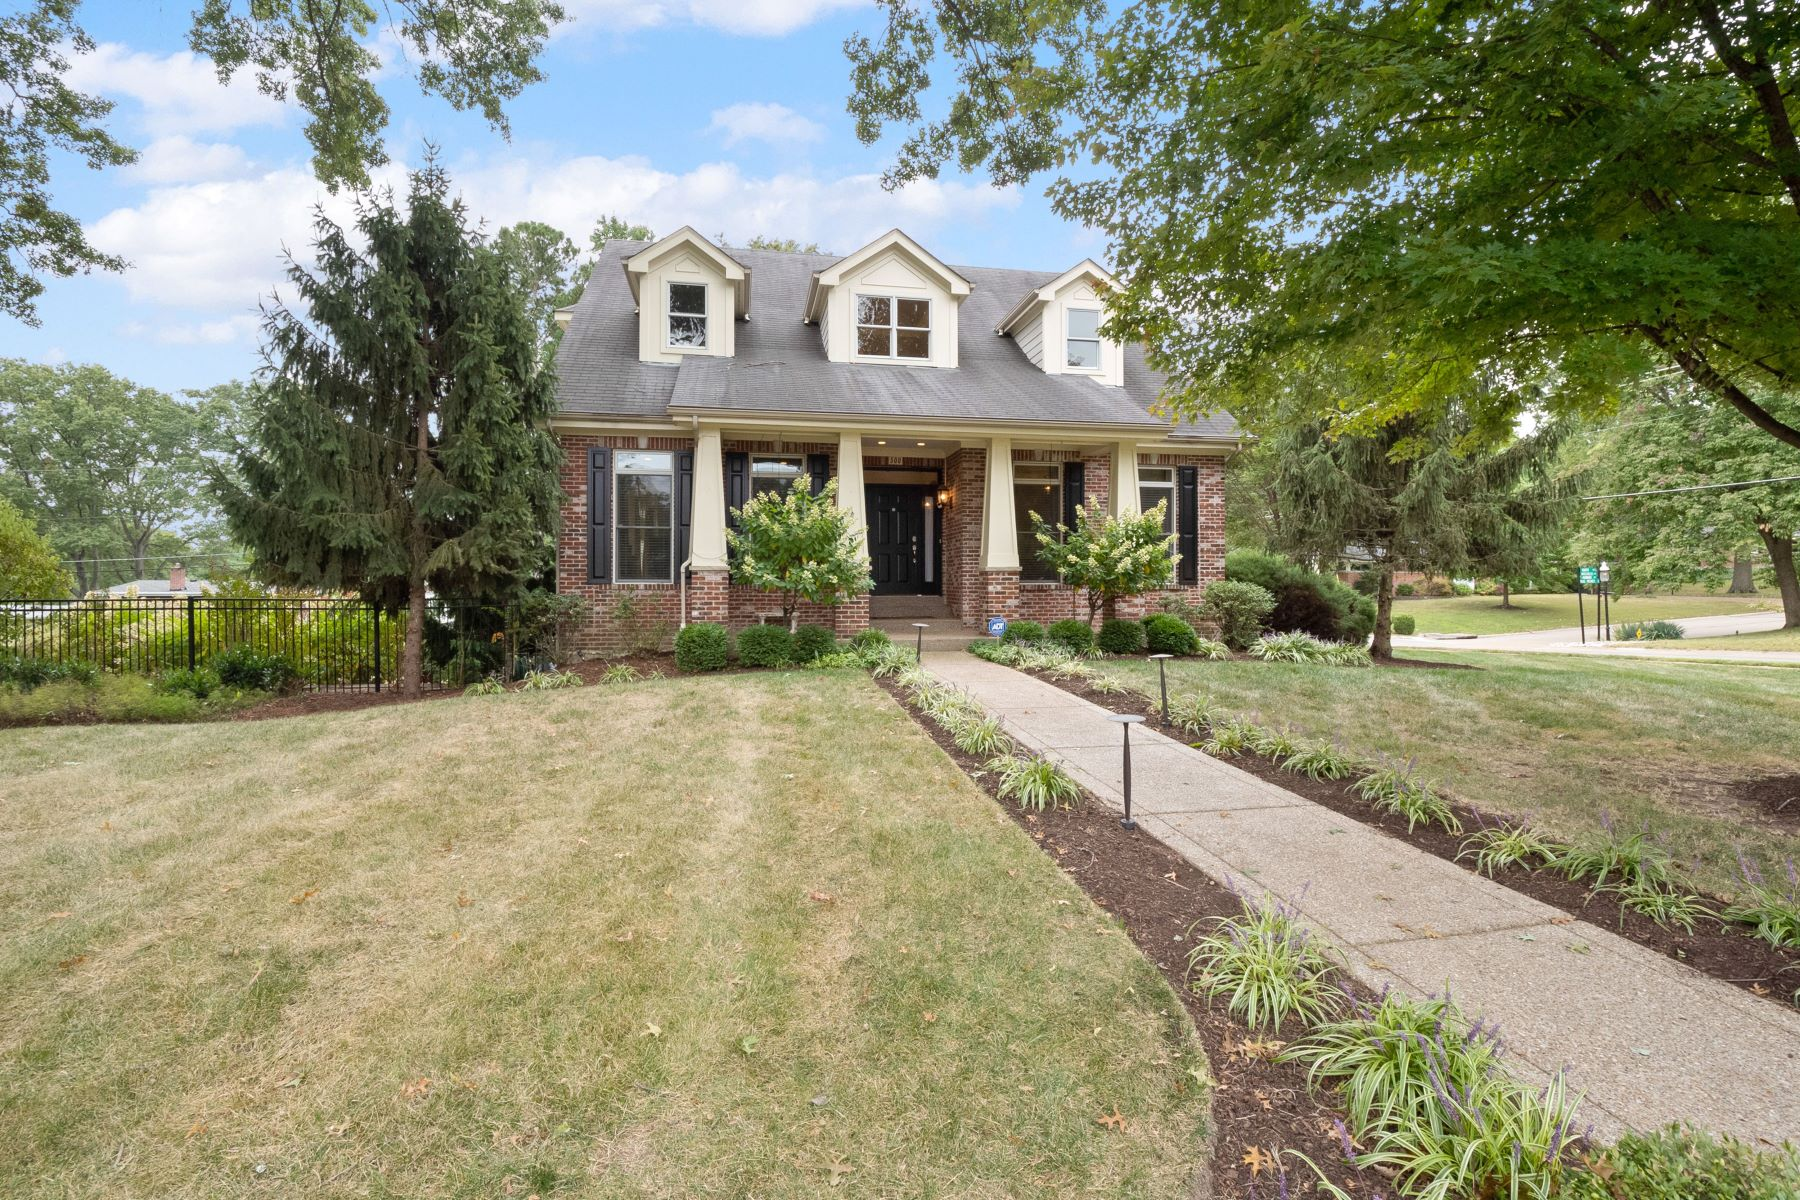 Property for Sale at Welcome to Wonderful Warson Woods! 500 Monaco Drive Warson Woods, Missouri 63122 United States